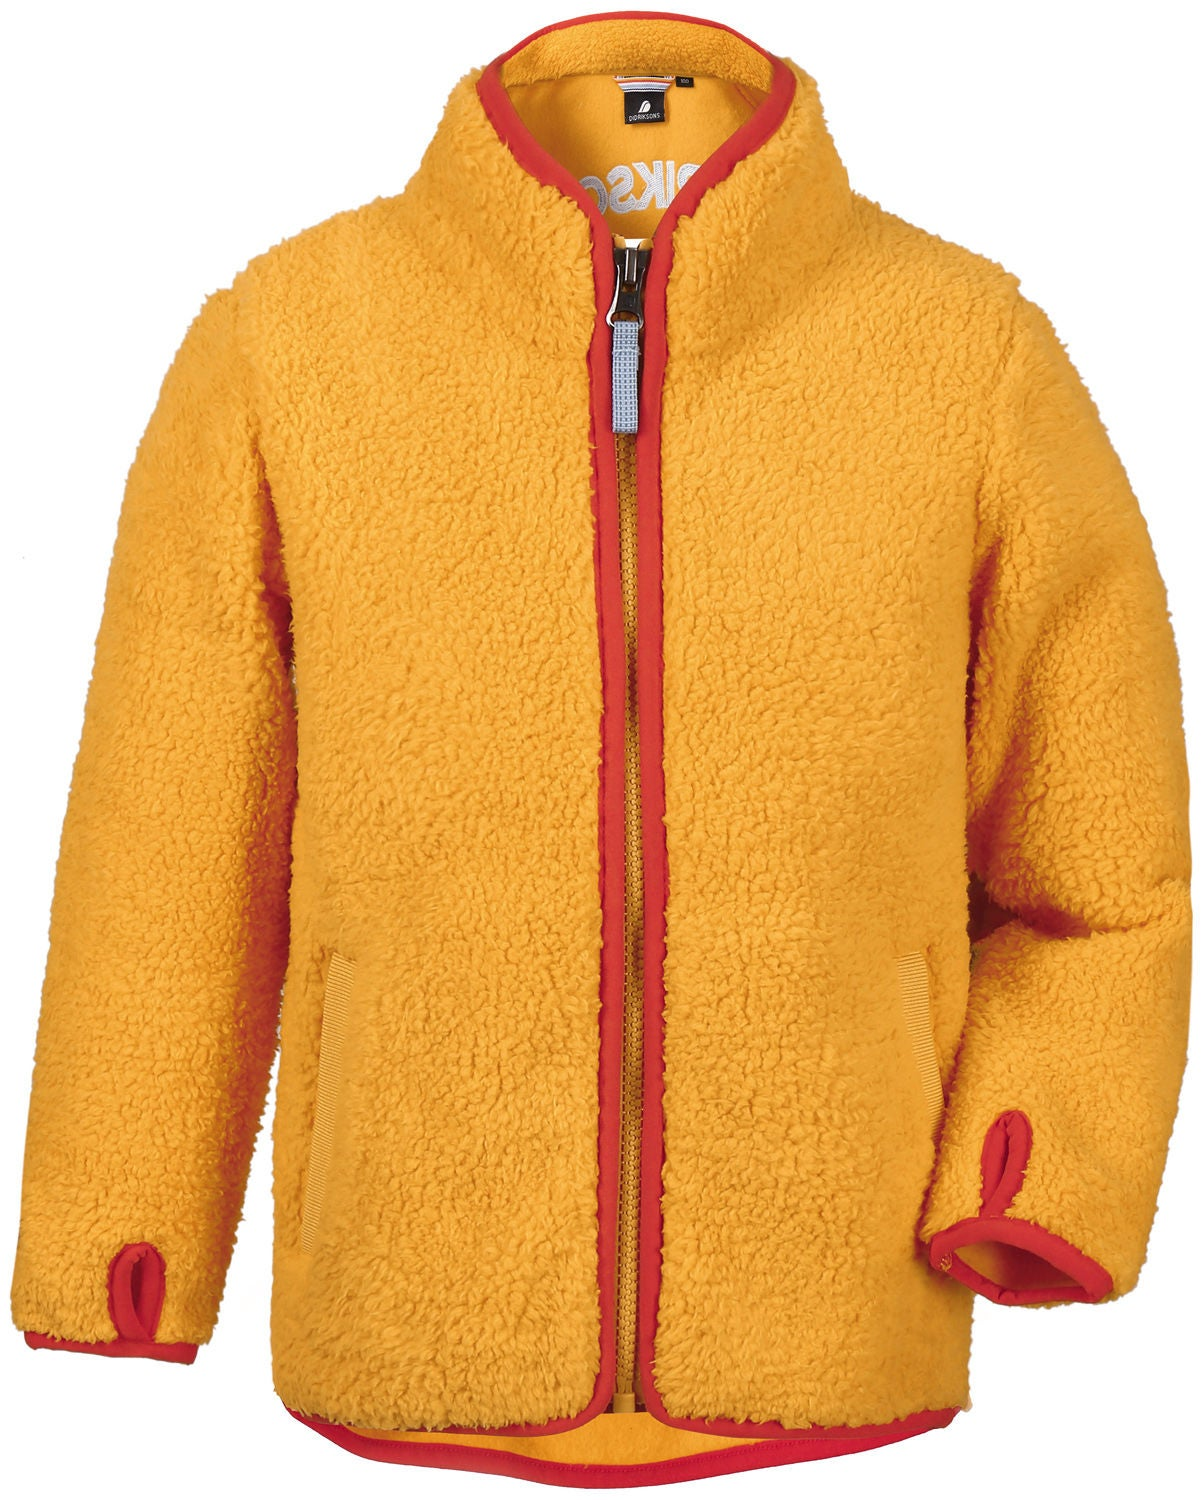 Didriksons Lo Pile Jacka, Mellow Yellow, 80